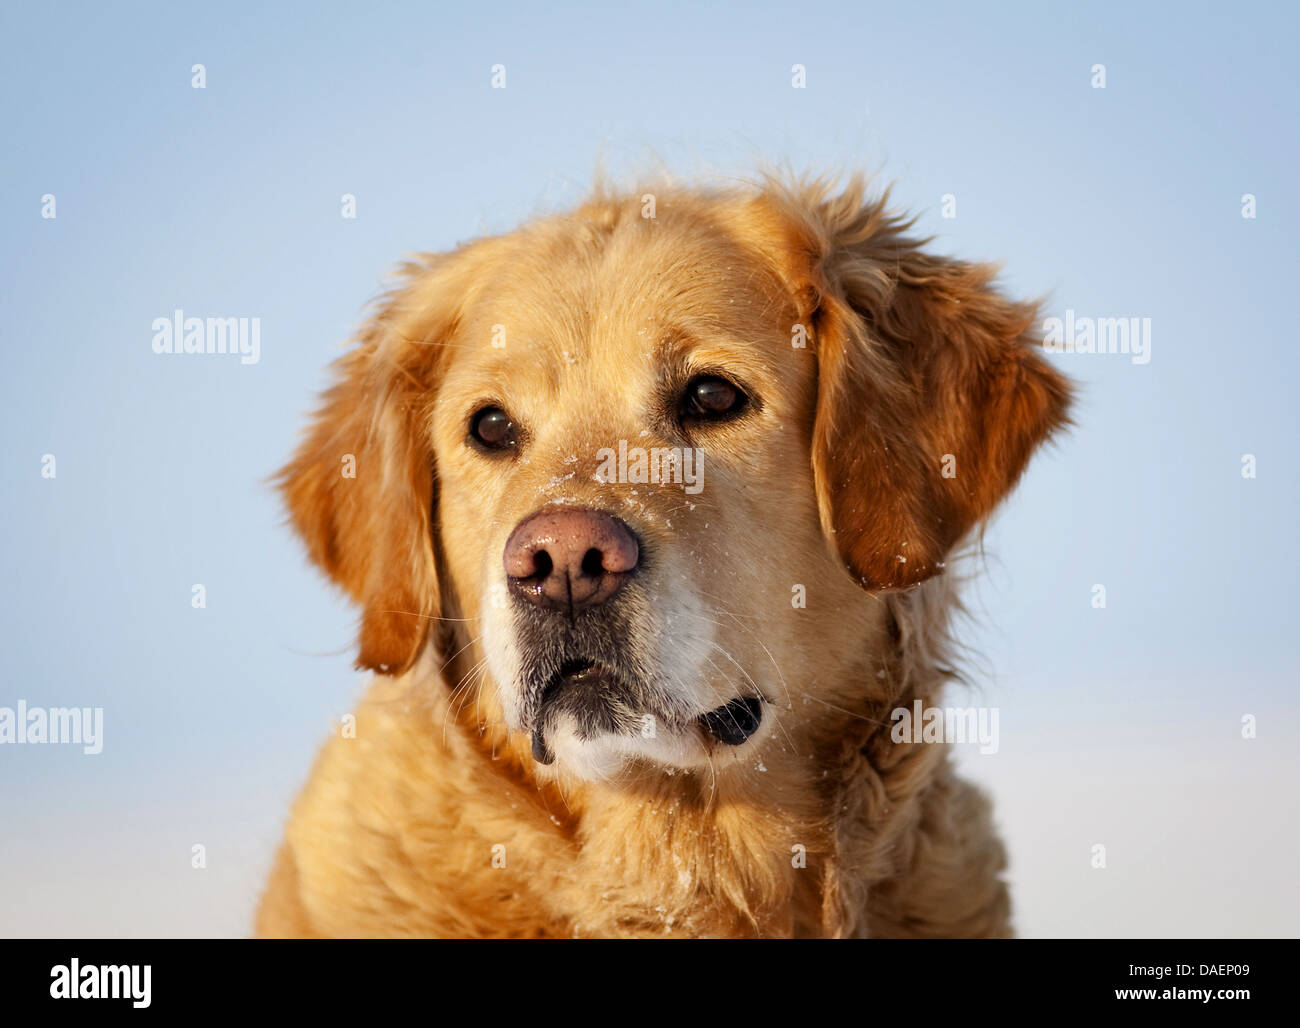 Golden Retriever (Canis lupus f. familiaris), portrait in the snow, Germany - Stock Image